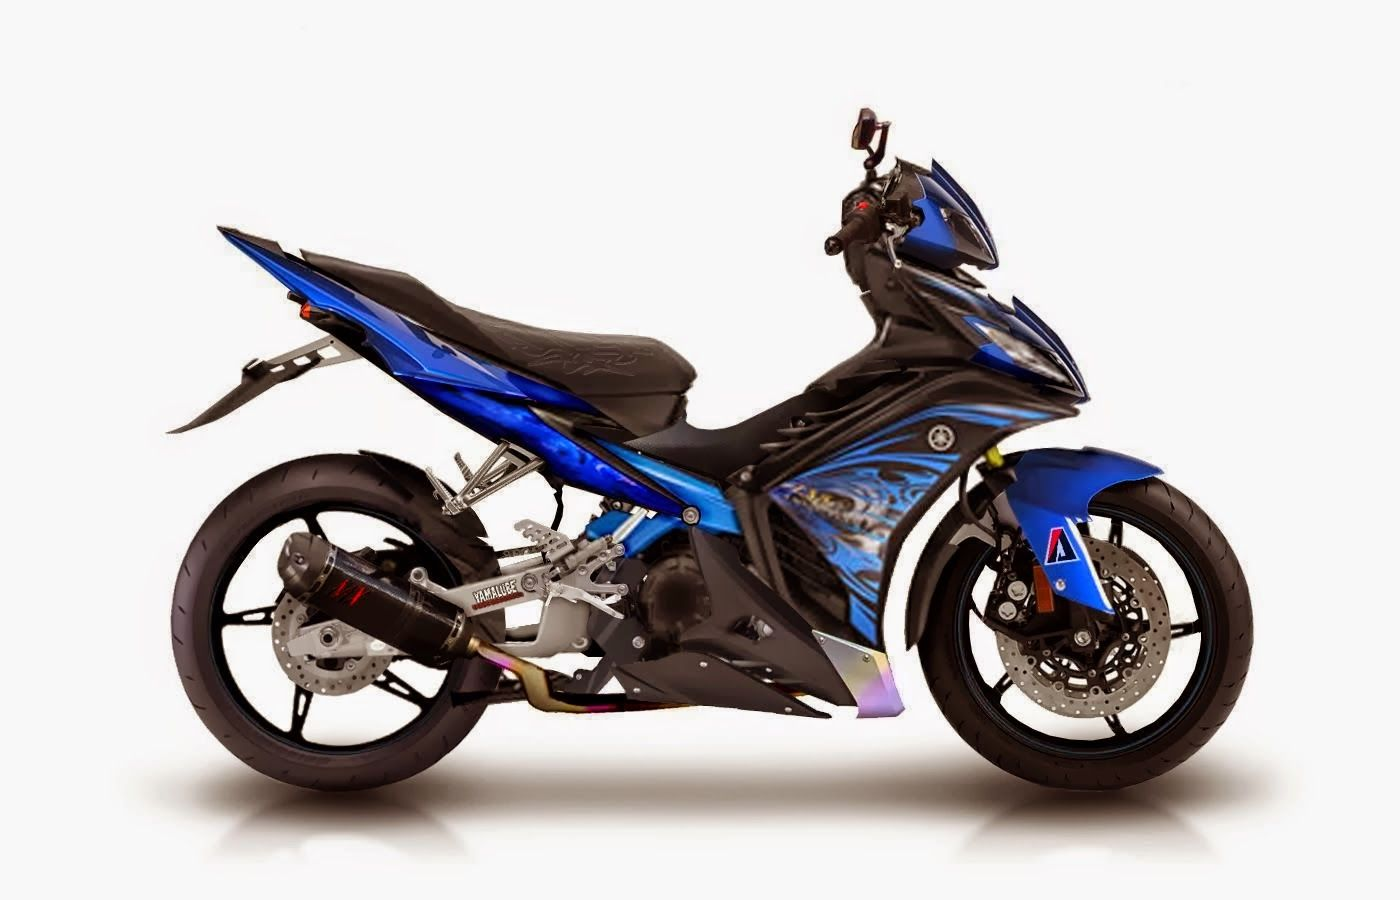 Related image Sepeda motor, Sporty, Vehicles